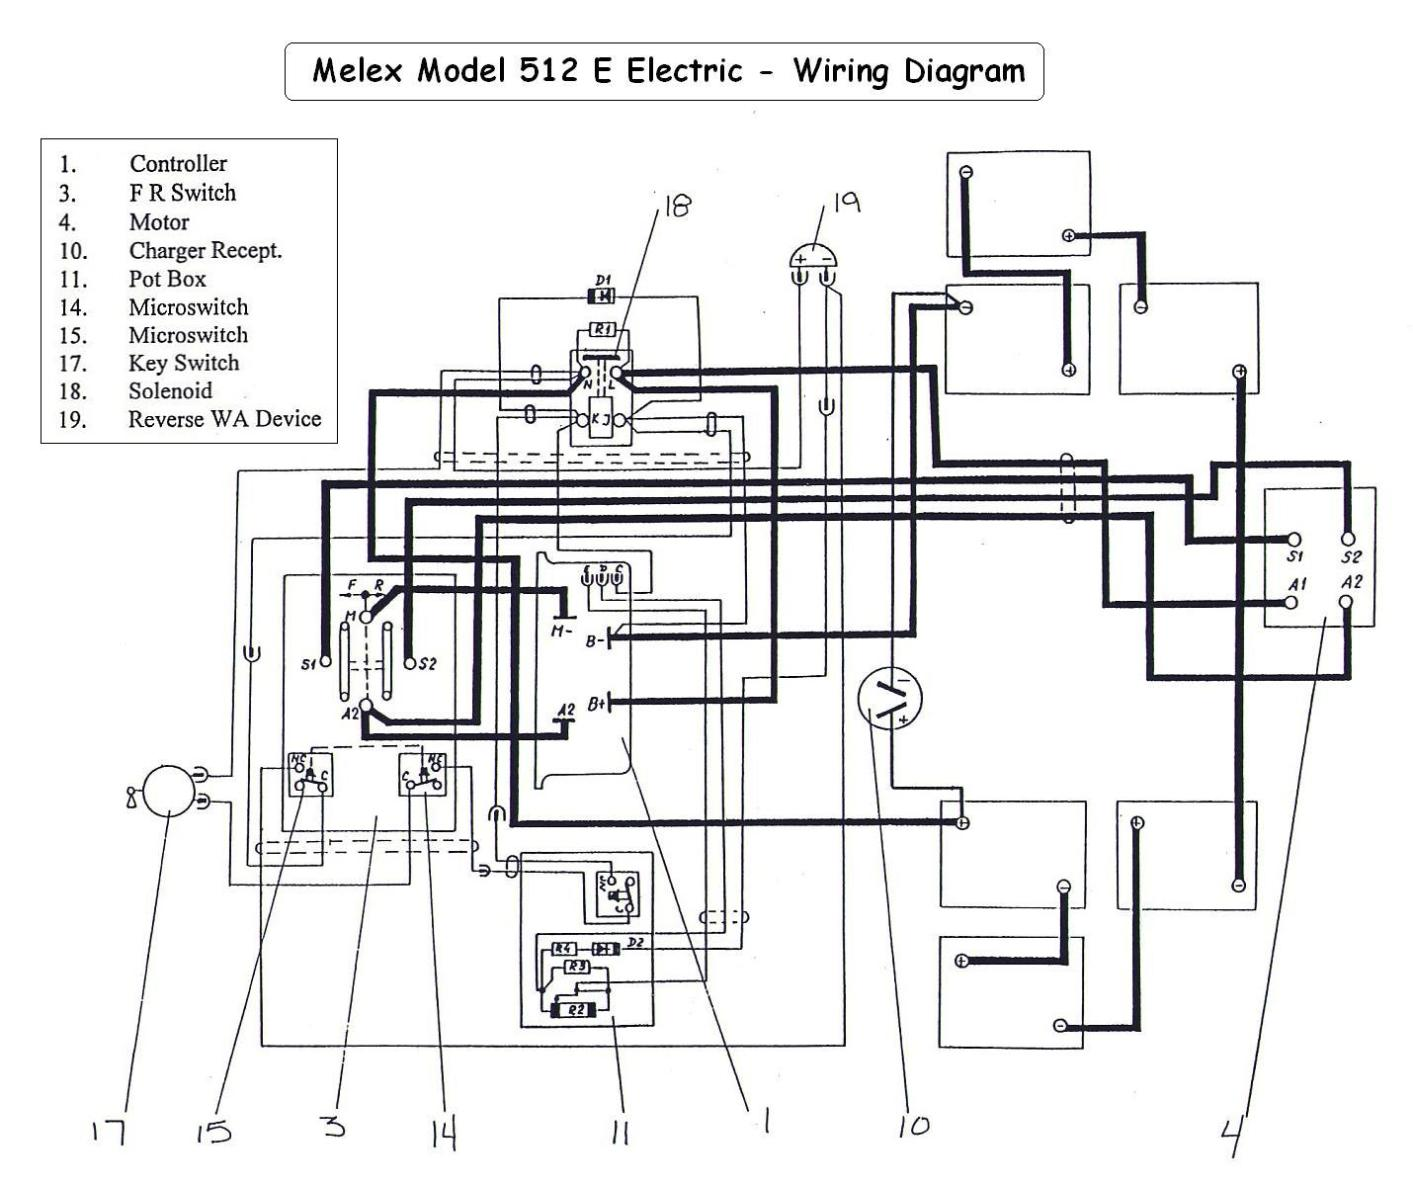 battery wiring diagram electric golf cart wiring diagram club car golf cart wiring diagram batteries nodasystech